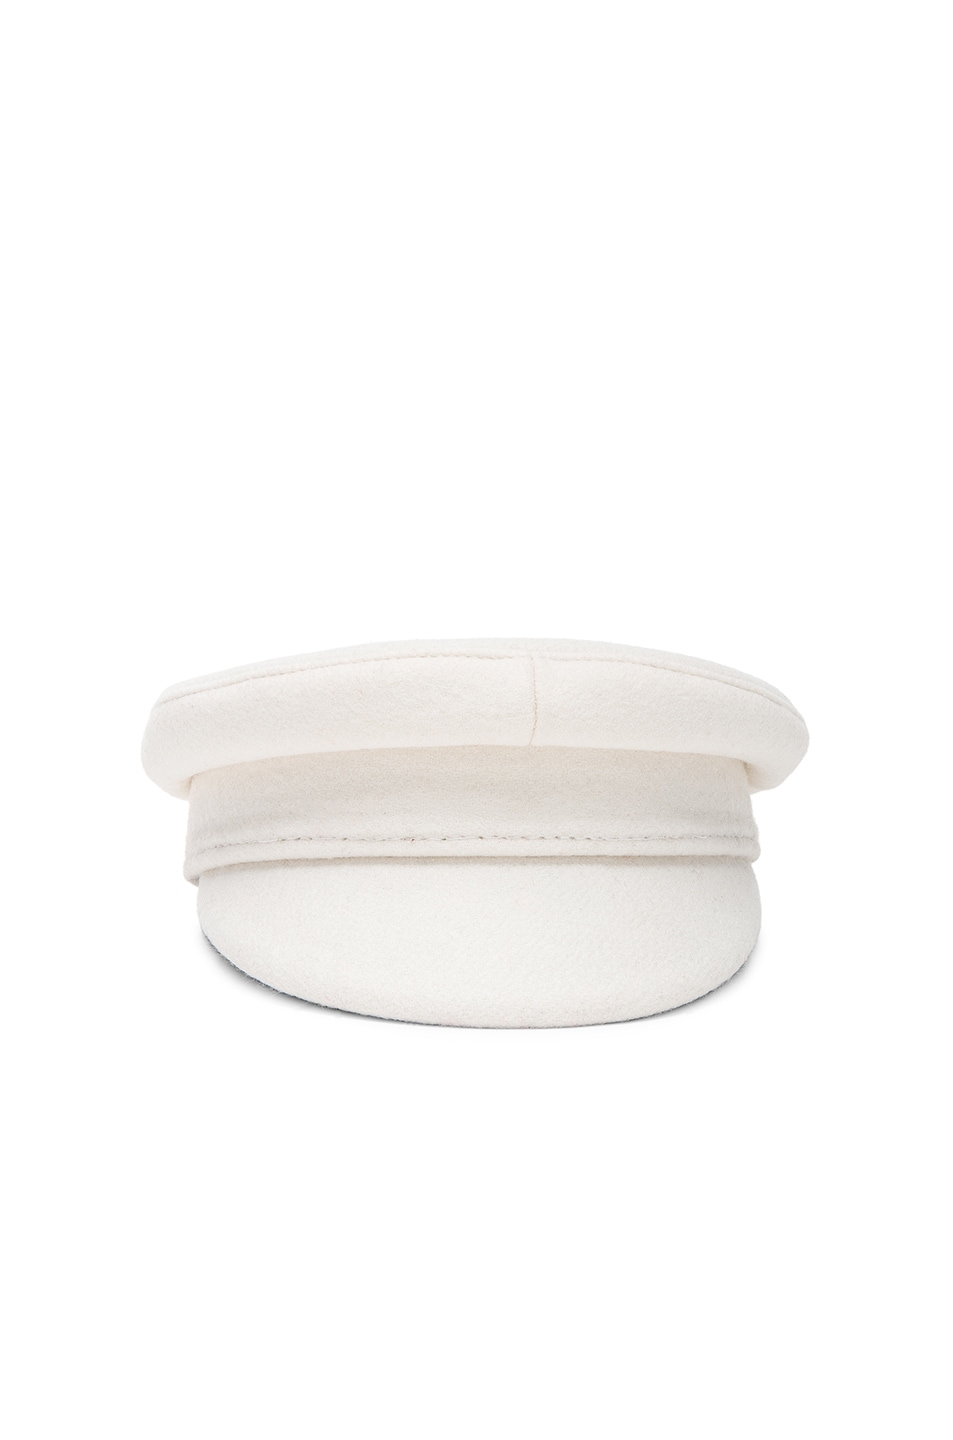 Image 1 of Ruslan Baginskiy Baker Boy Cap in White